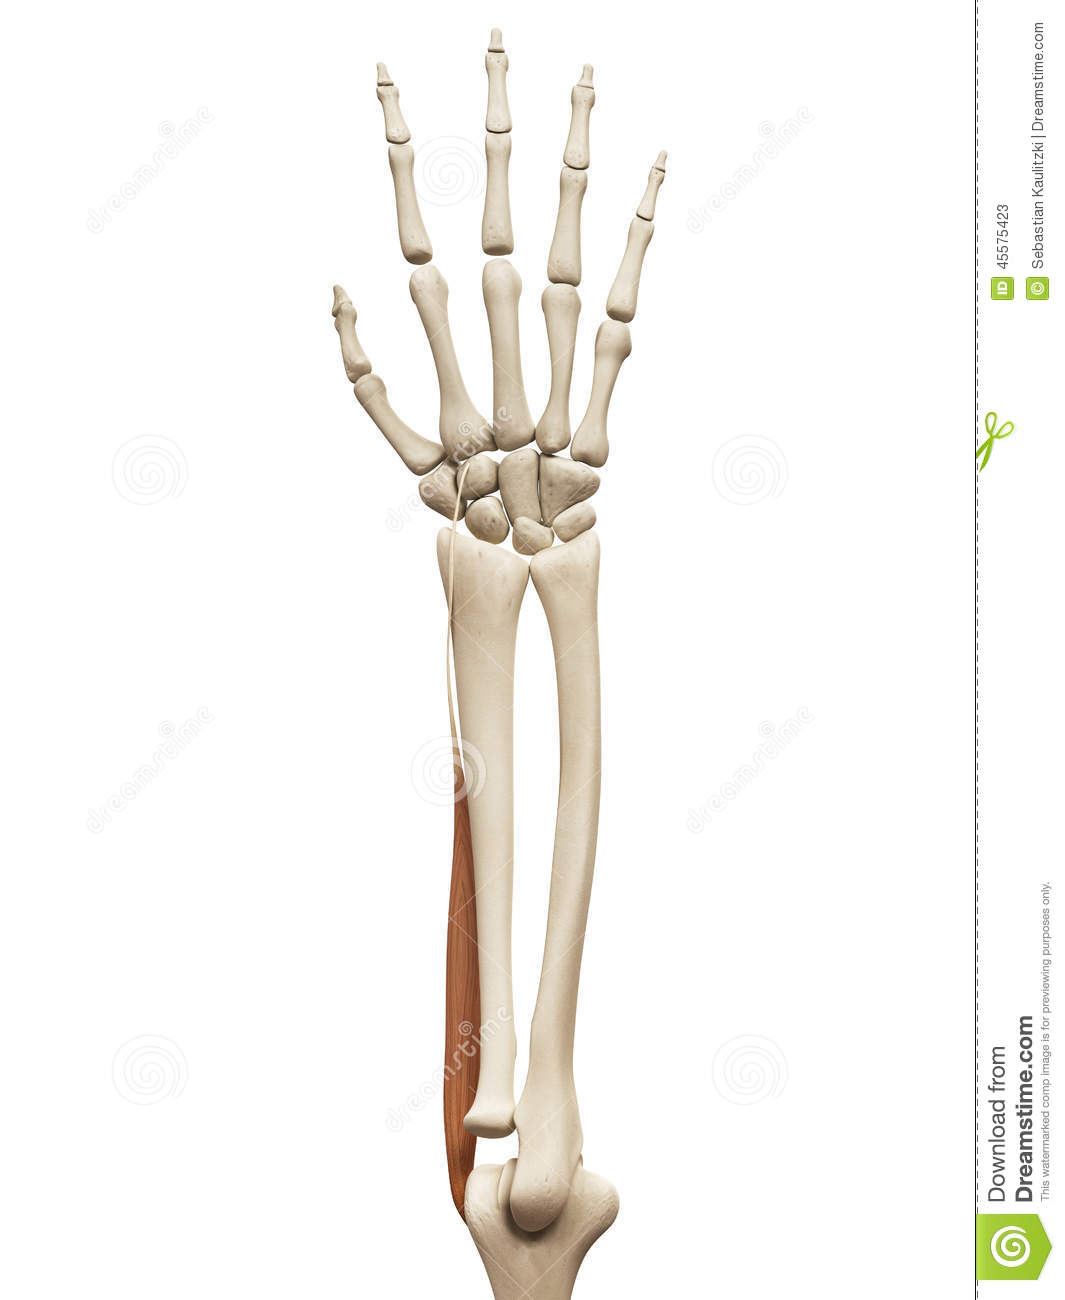 the extensor carpi radialis longus stock illustration illustration